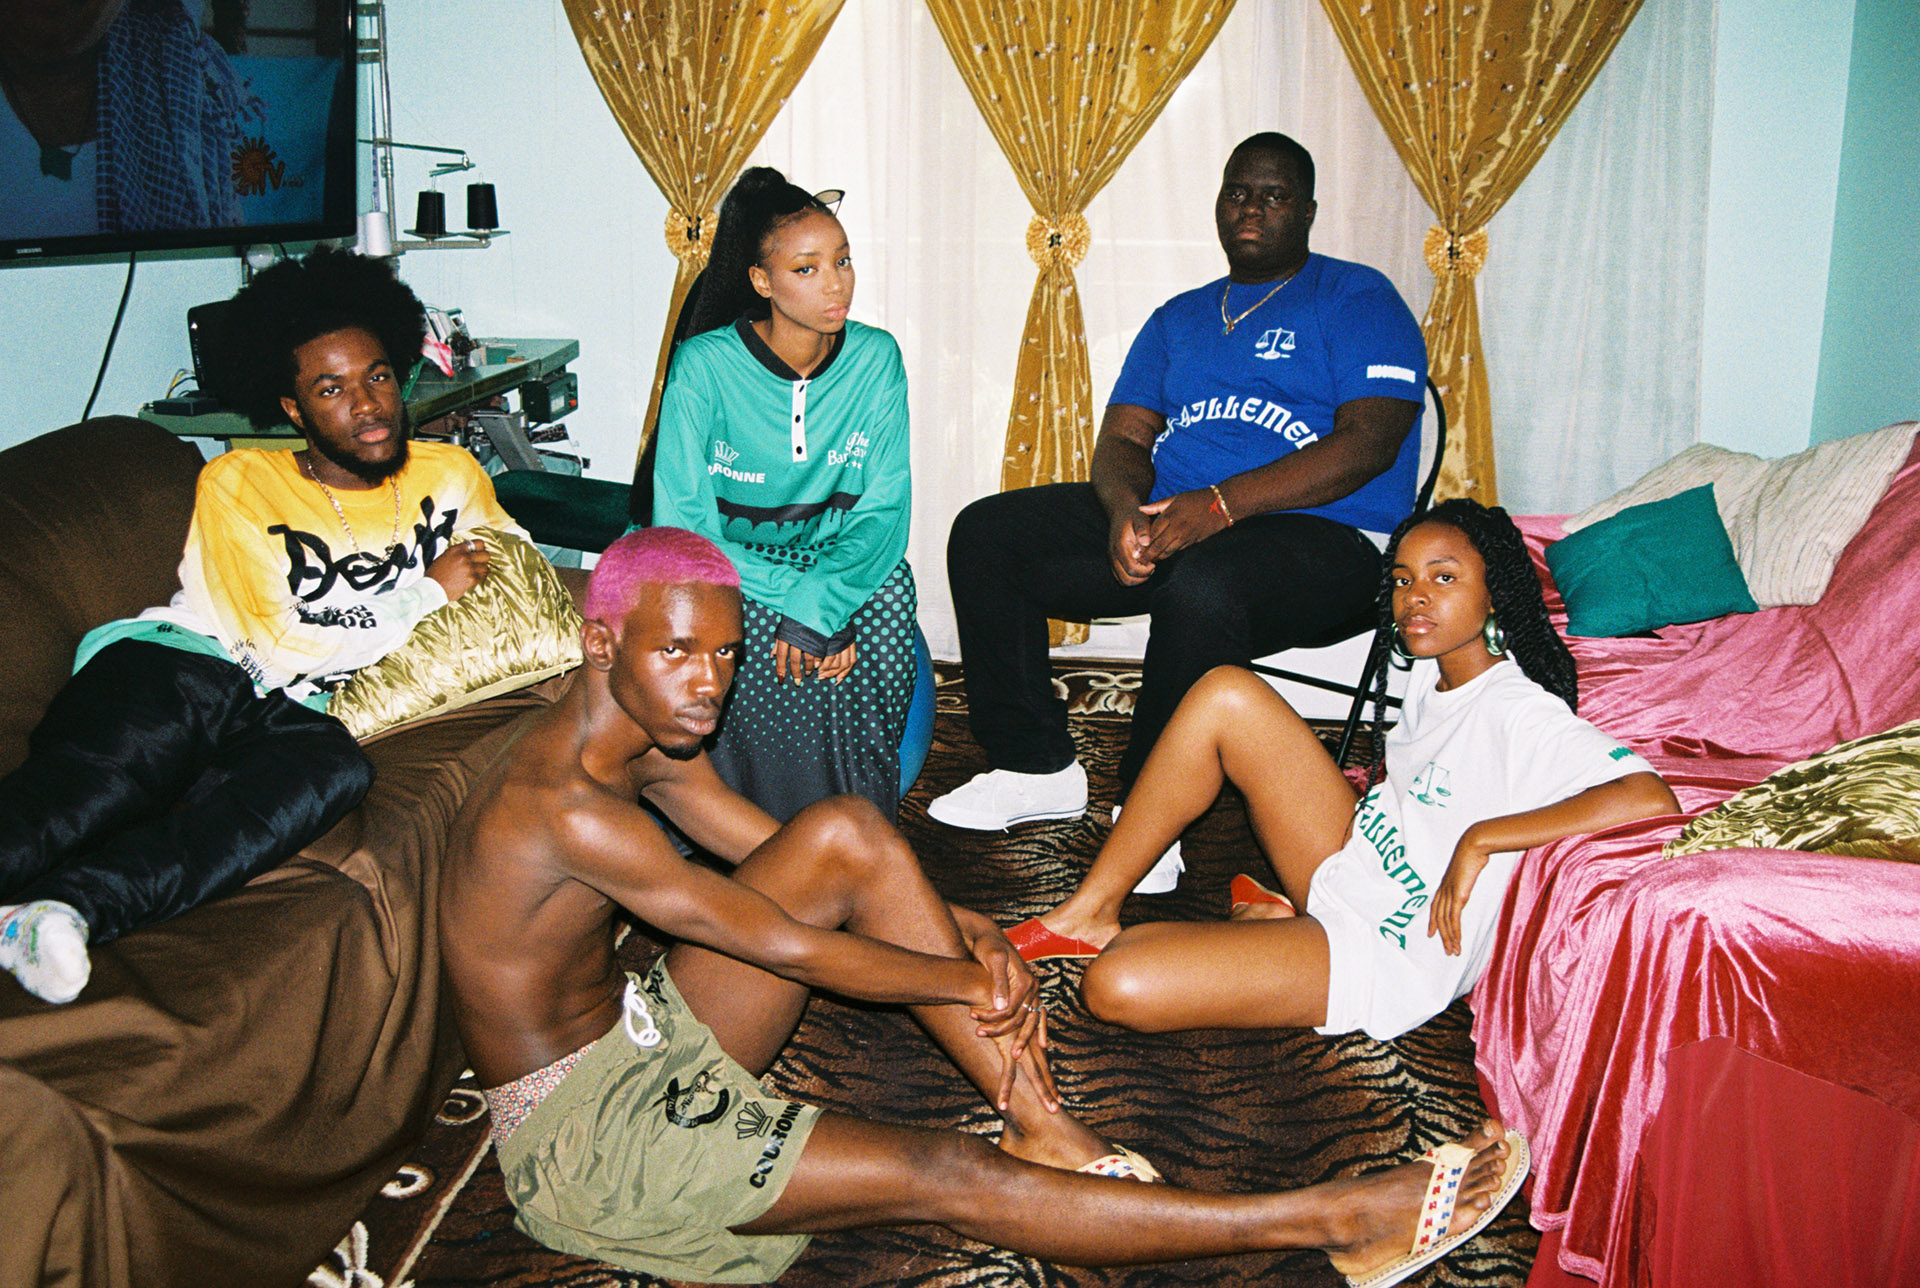 group of black models sitting in lounge by Oumayma B Tanfous for Moonshine international sapologie with Nataal